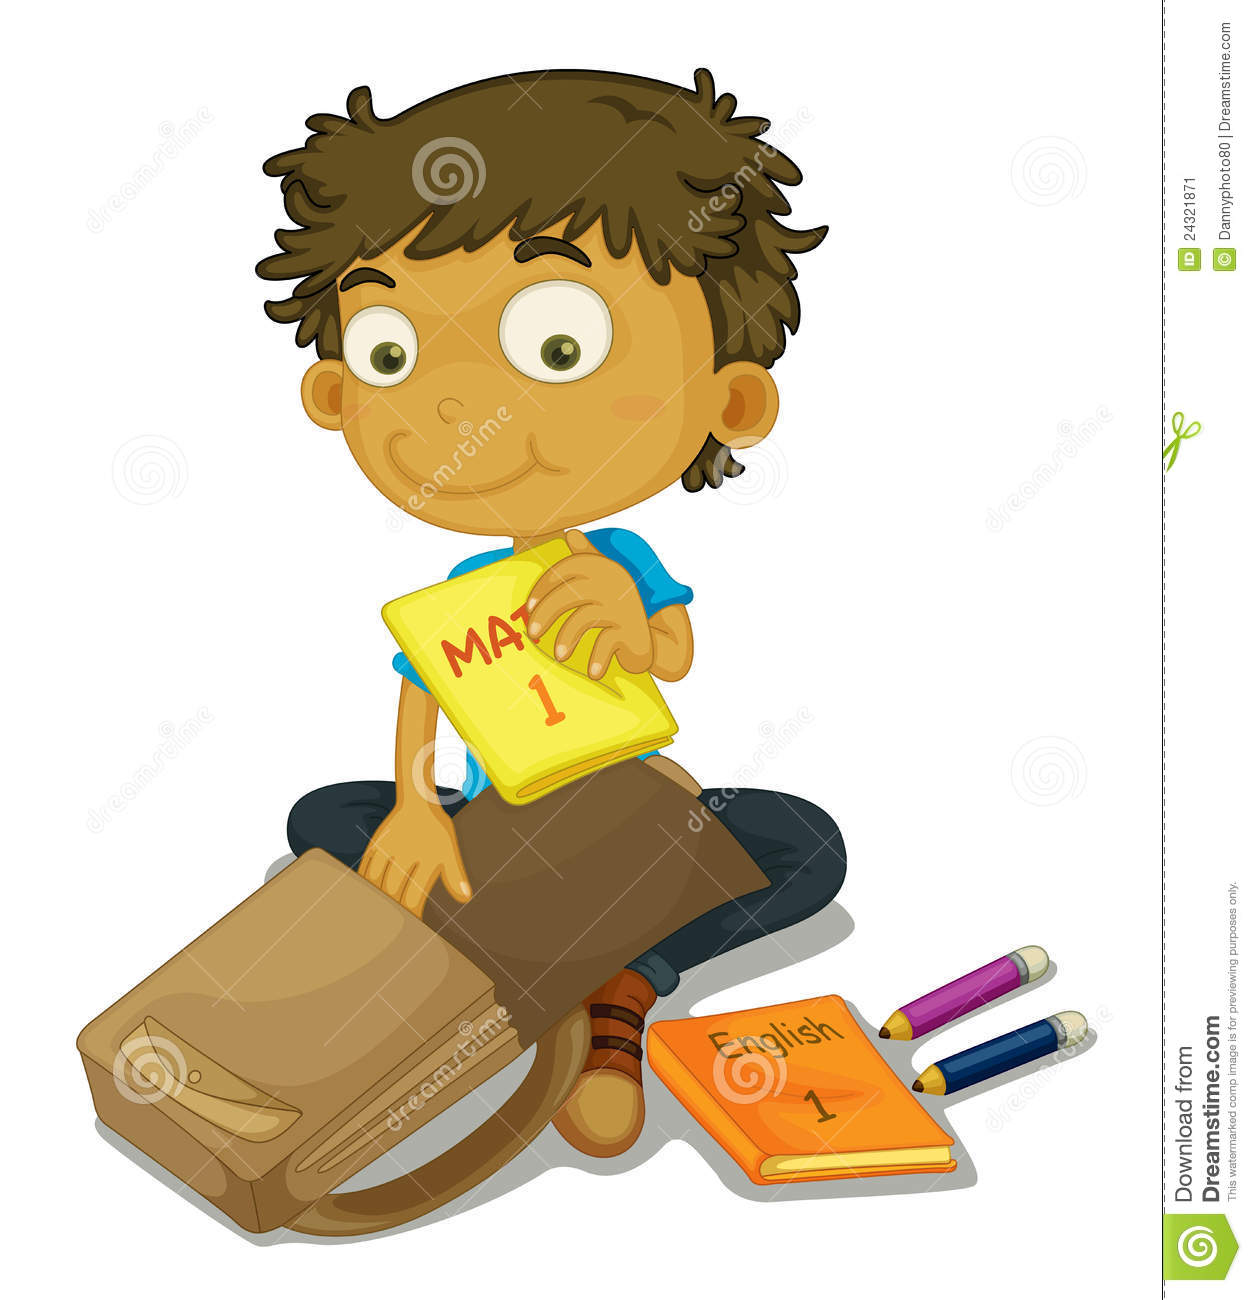 Clipart Packing Backpack packing backpack stock illustrations, vectors ...